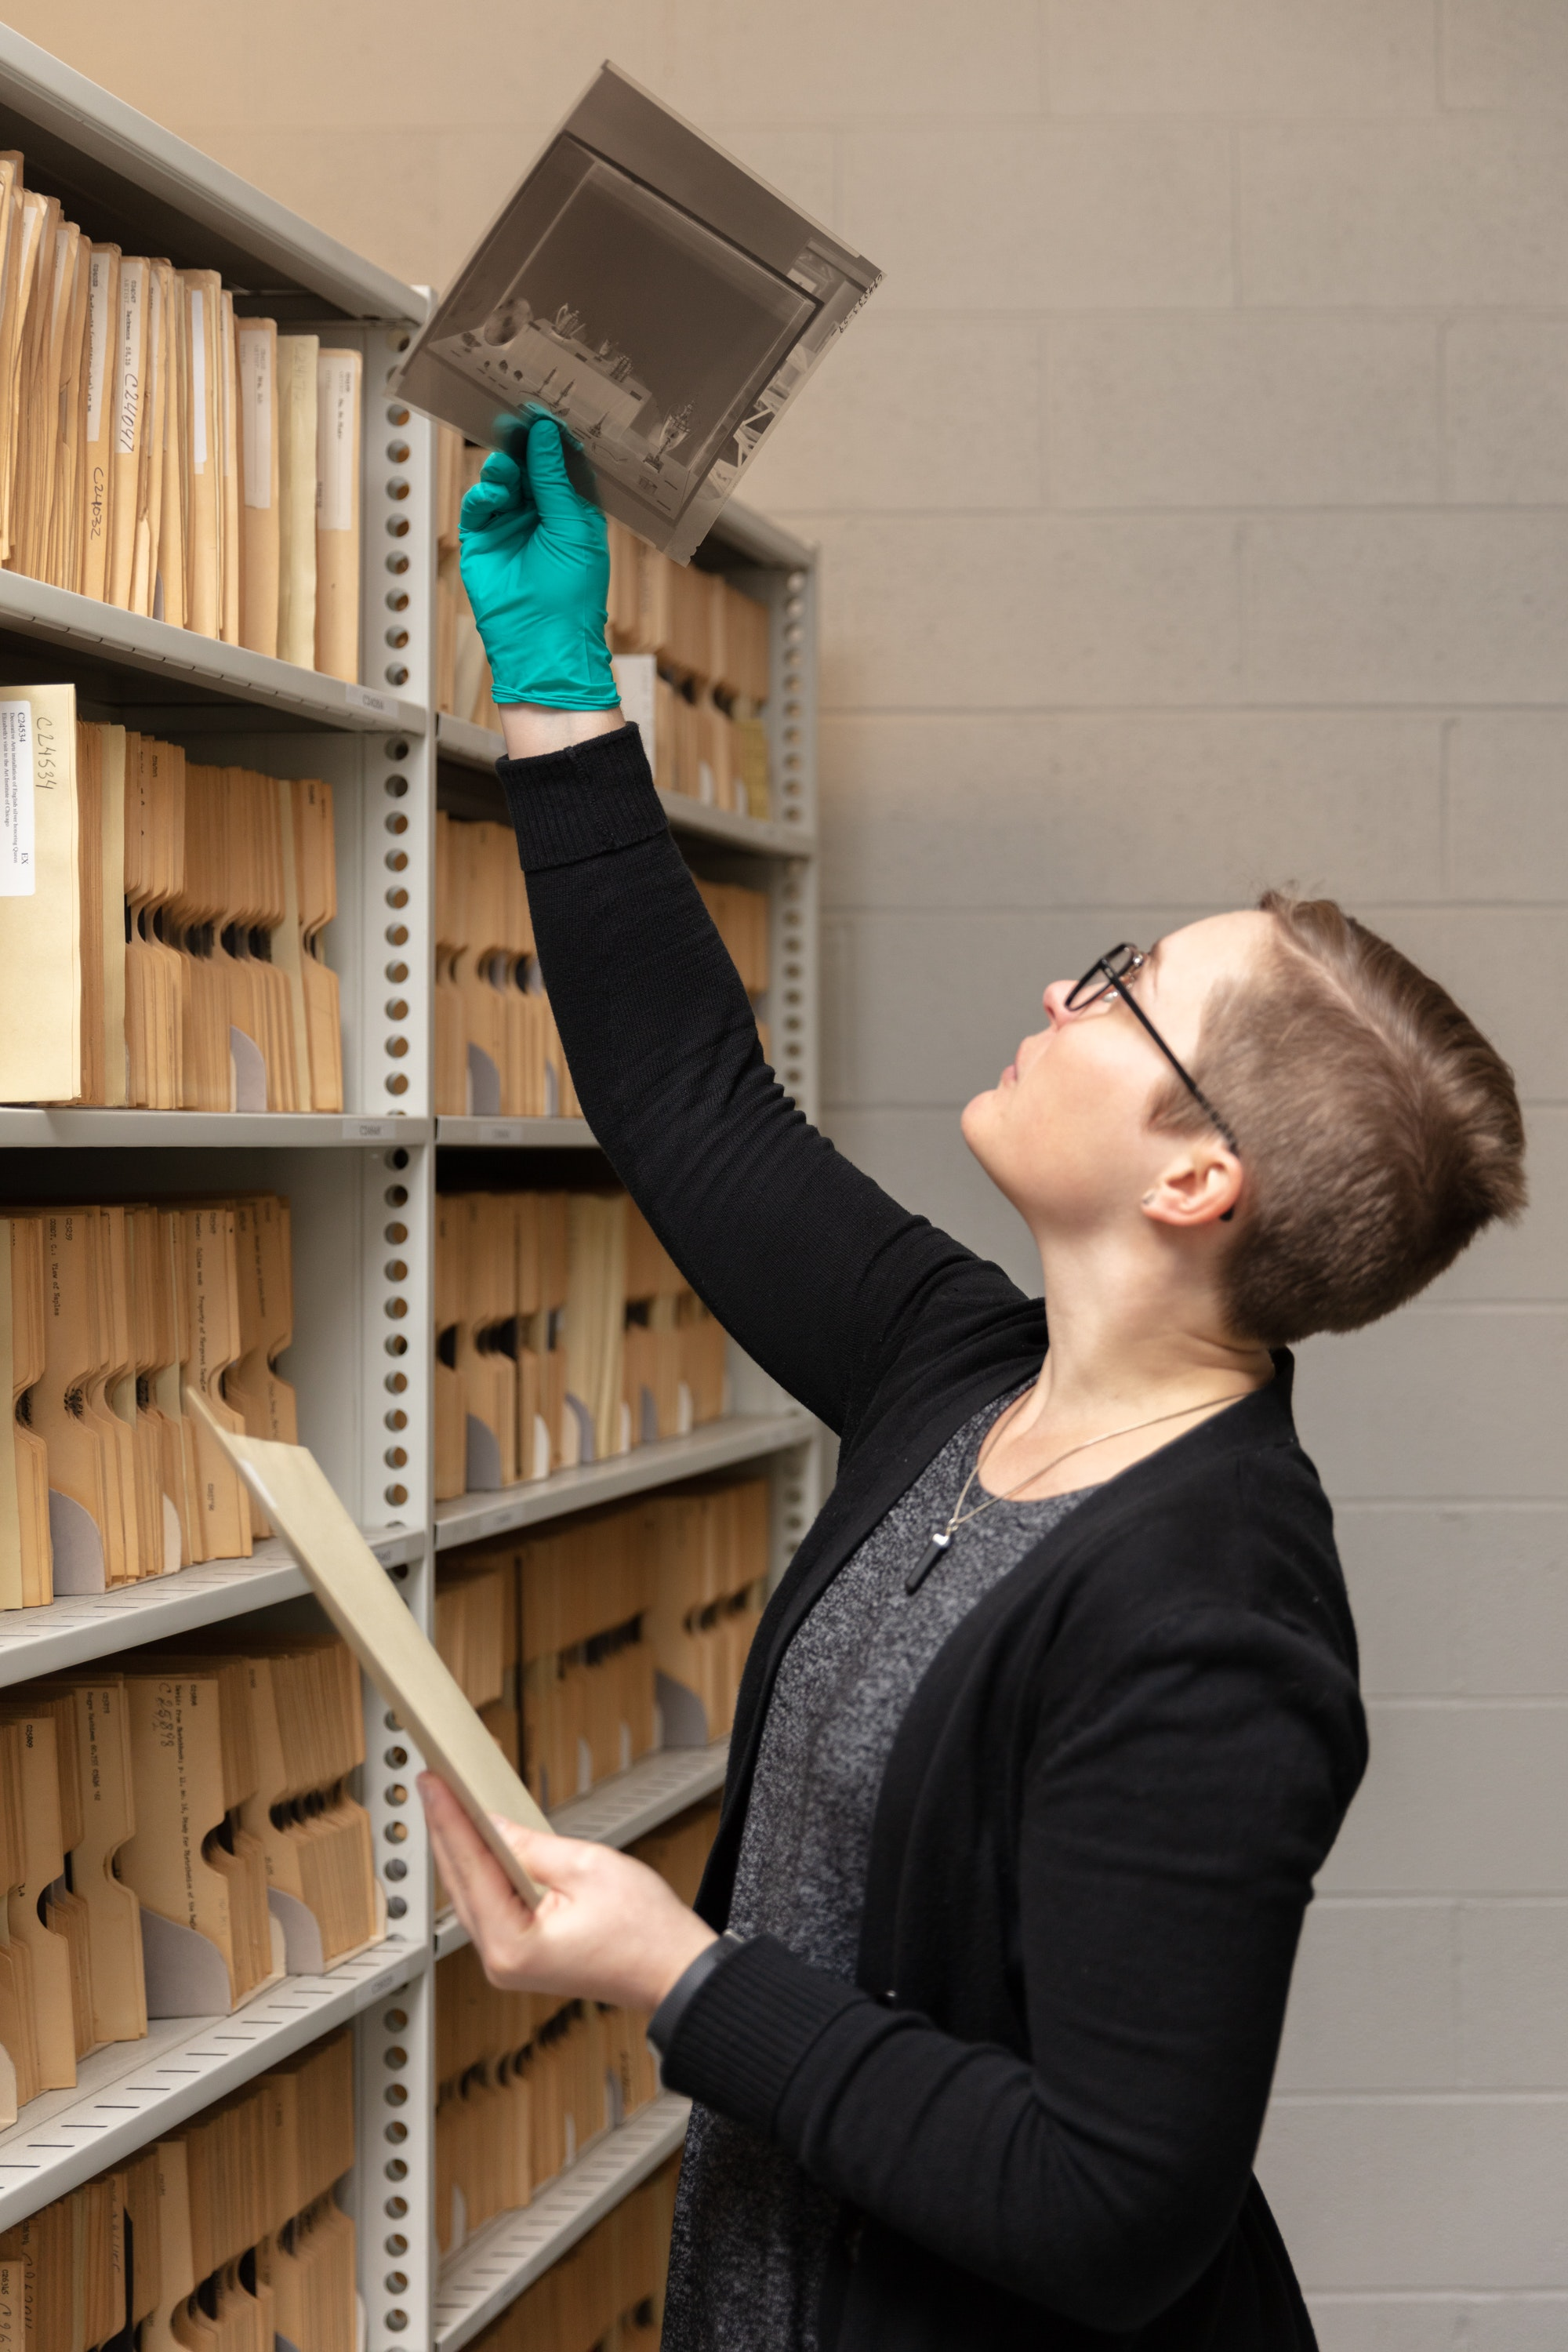 Archivist Shelby Silvernell holds on old large scale negative up to the light